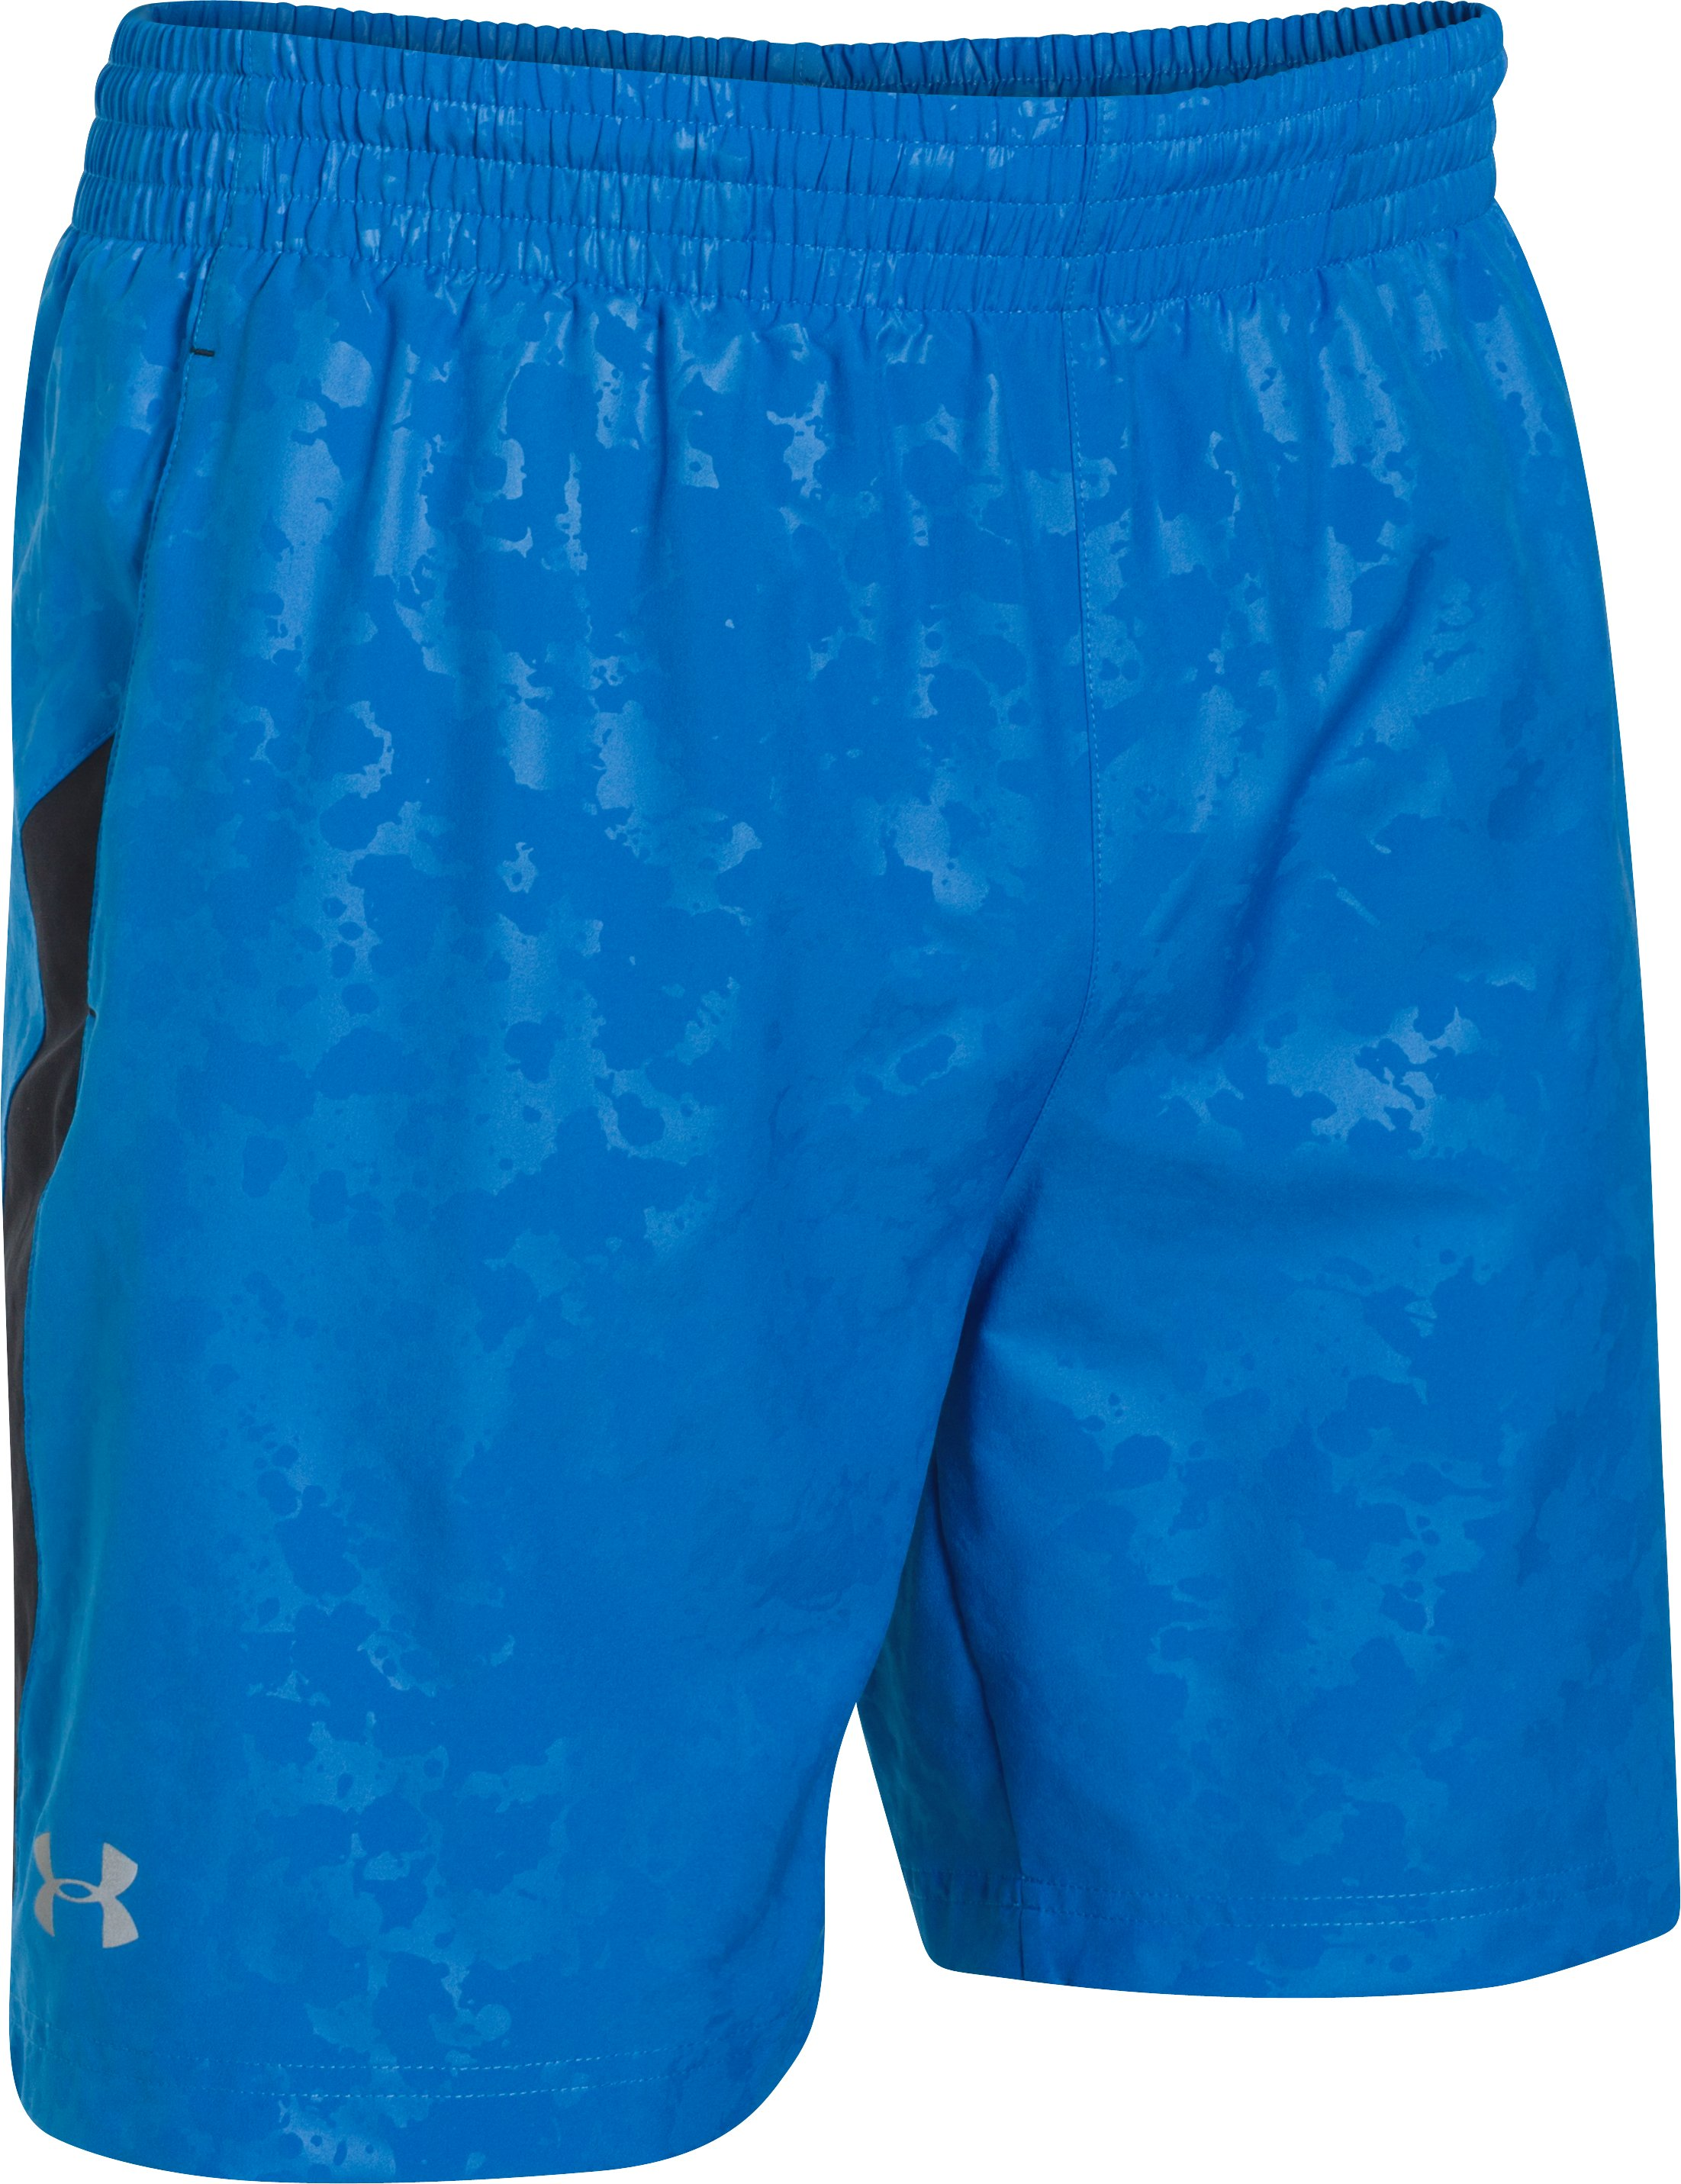 "Men's UA Launch Run 7"" Printed Shorts, BLUE JET,"